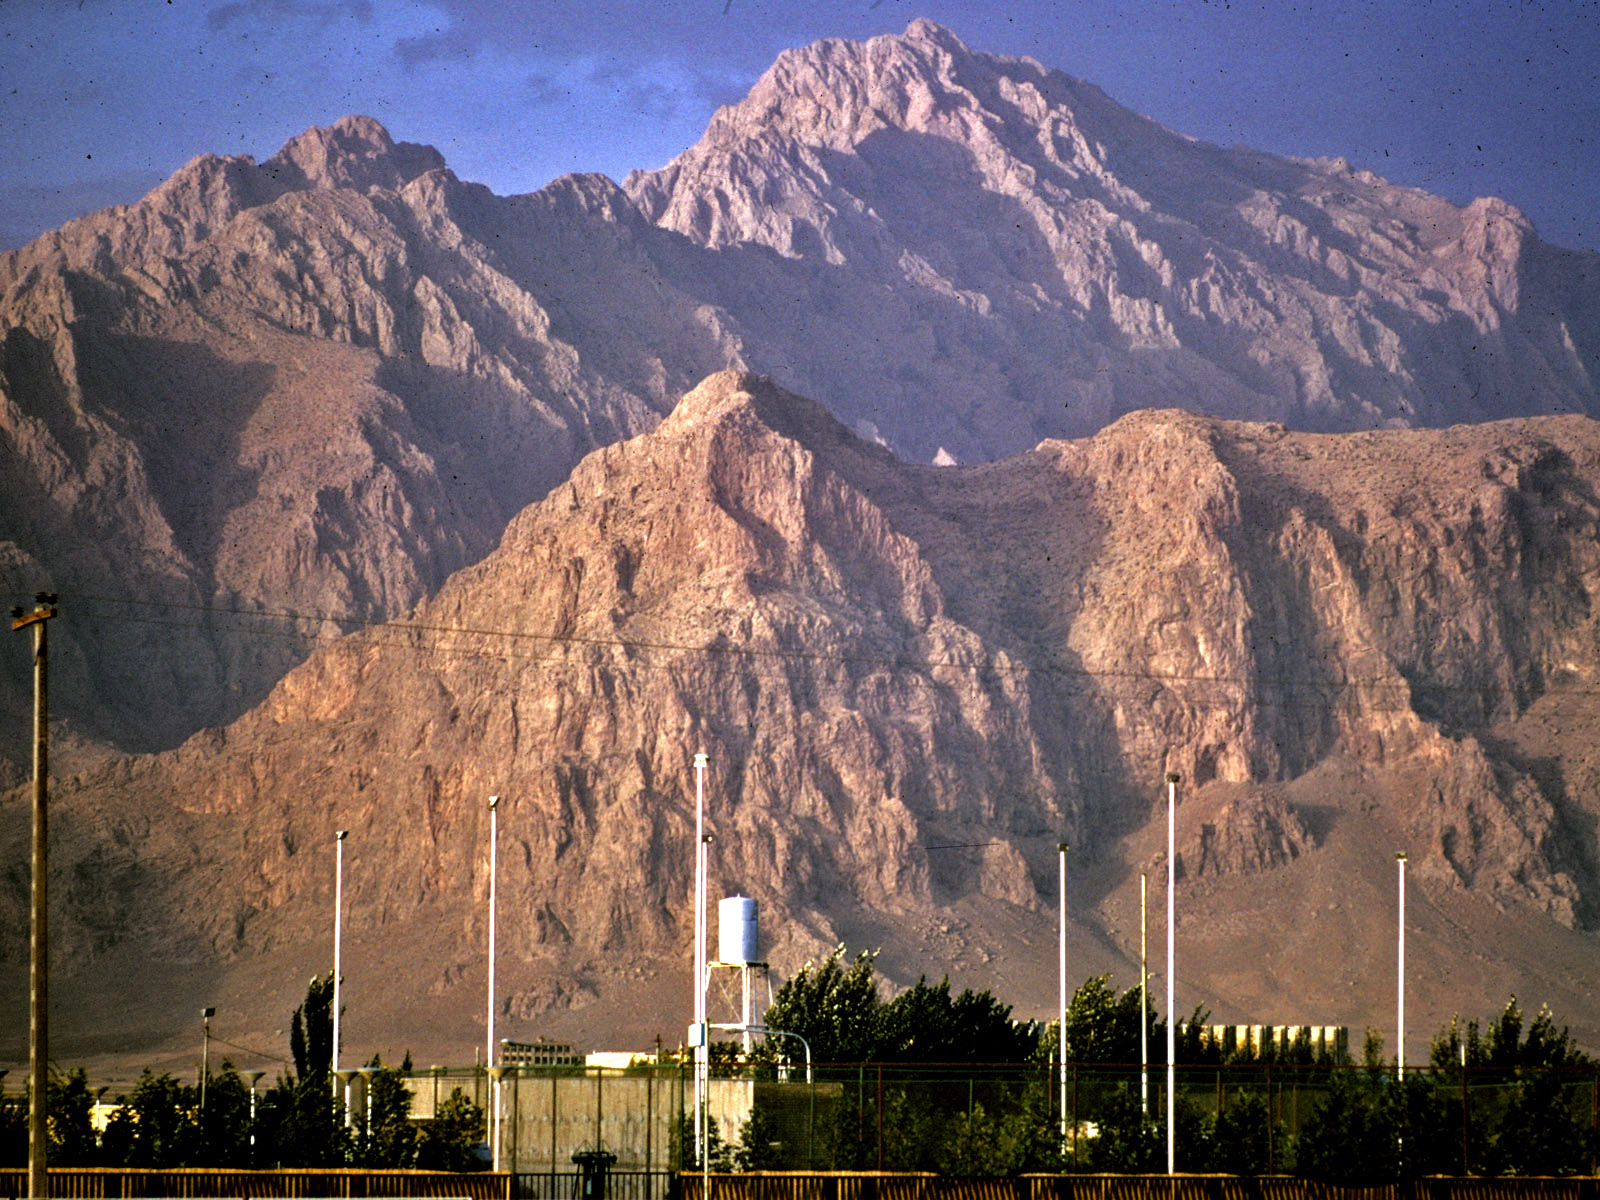 Kuh-i-Parau seen from Kermanshah (Tony Waltham)